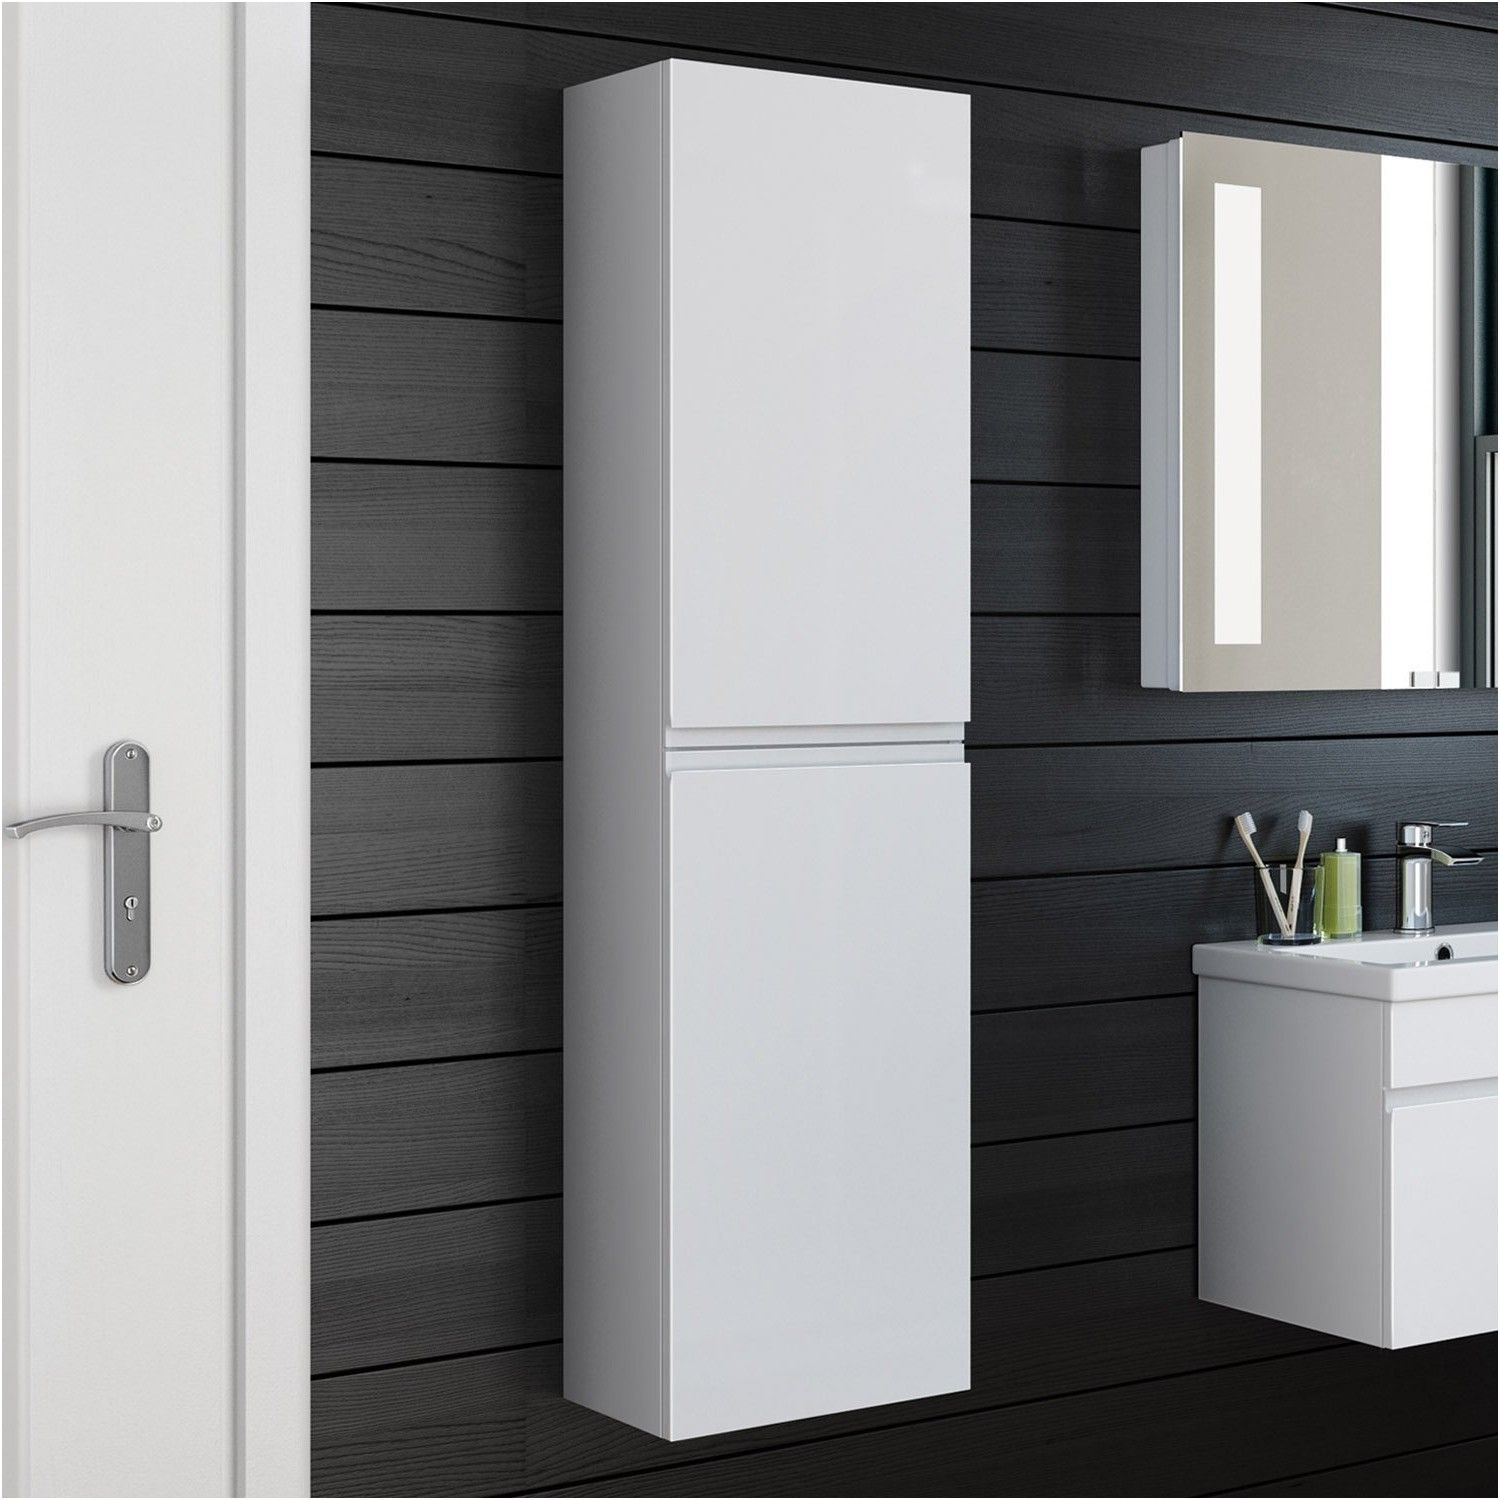 mirrored towel ideas bathroom storage full ikea size tables units of wall remodel cabinet cabinets freestanding vanity furniture